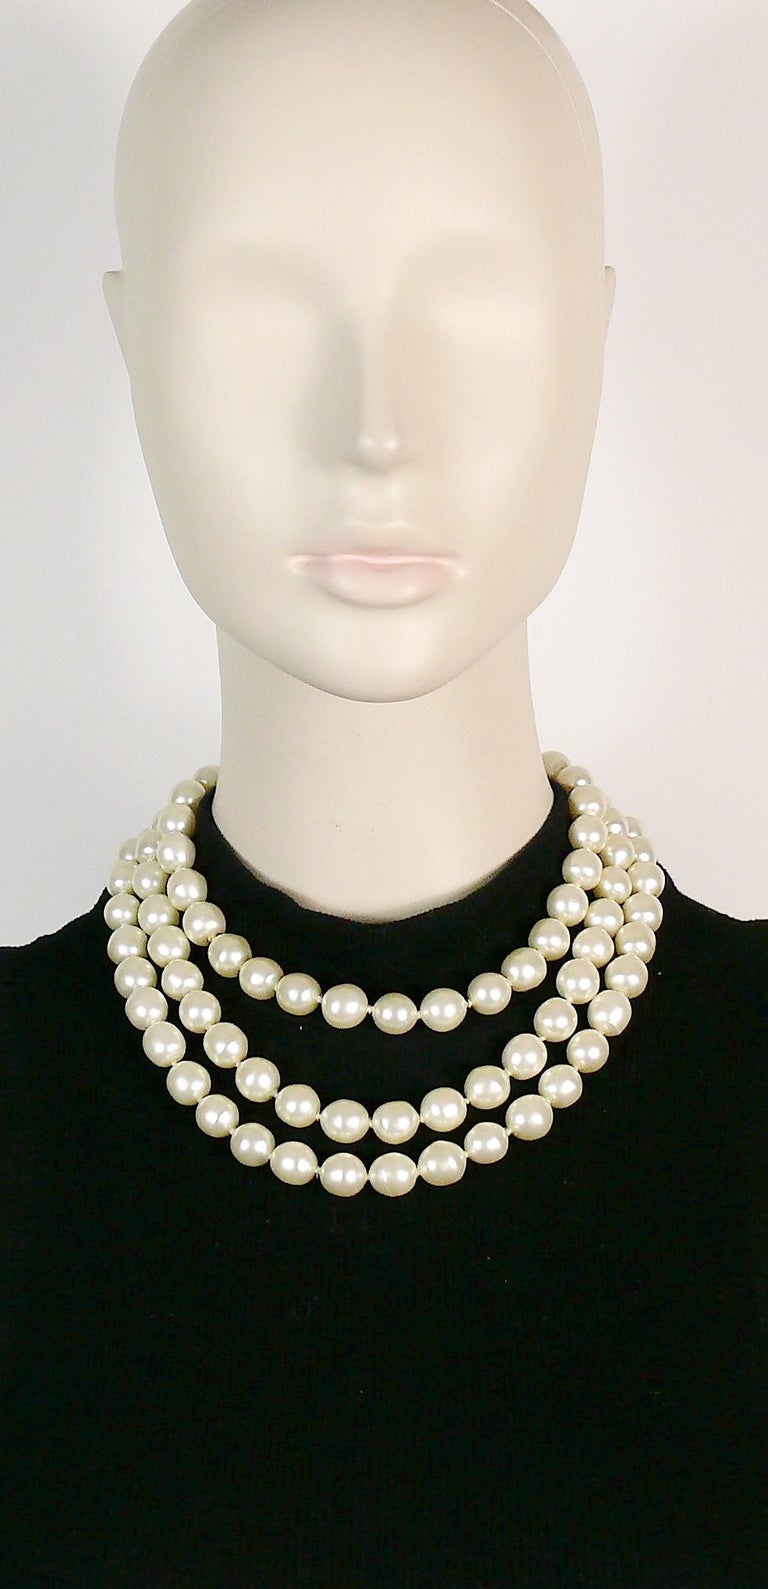 4691b4f5d03a2 Chanel Vintage Iconic Triple Strand Pearl Necklace